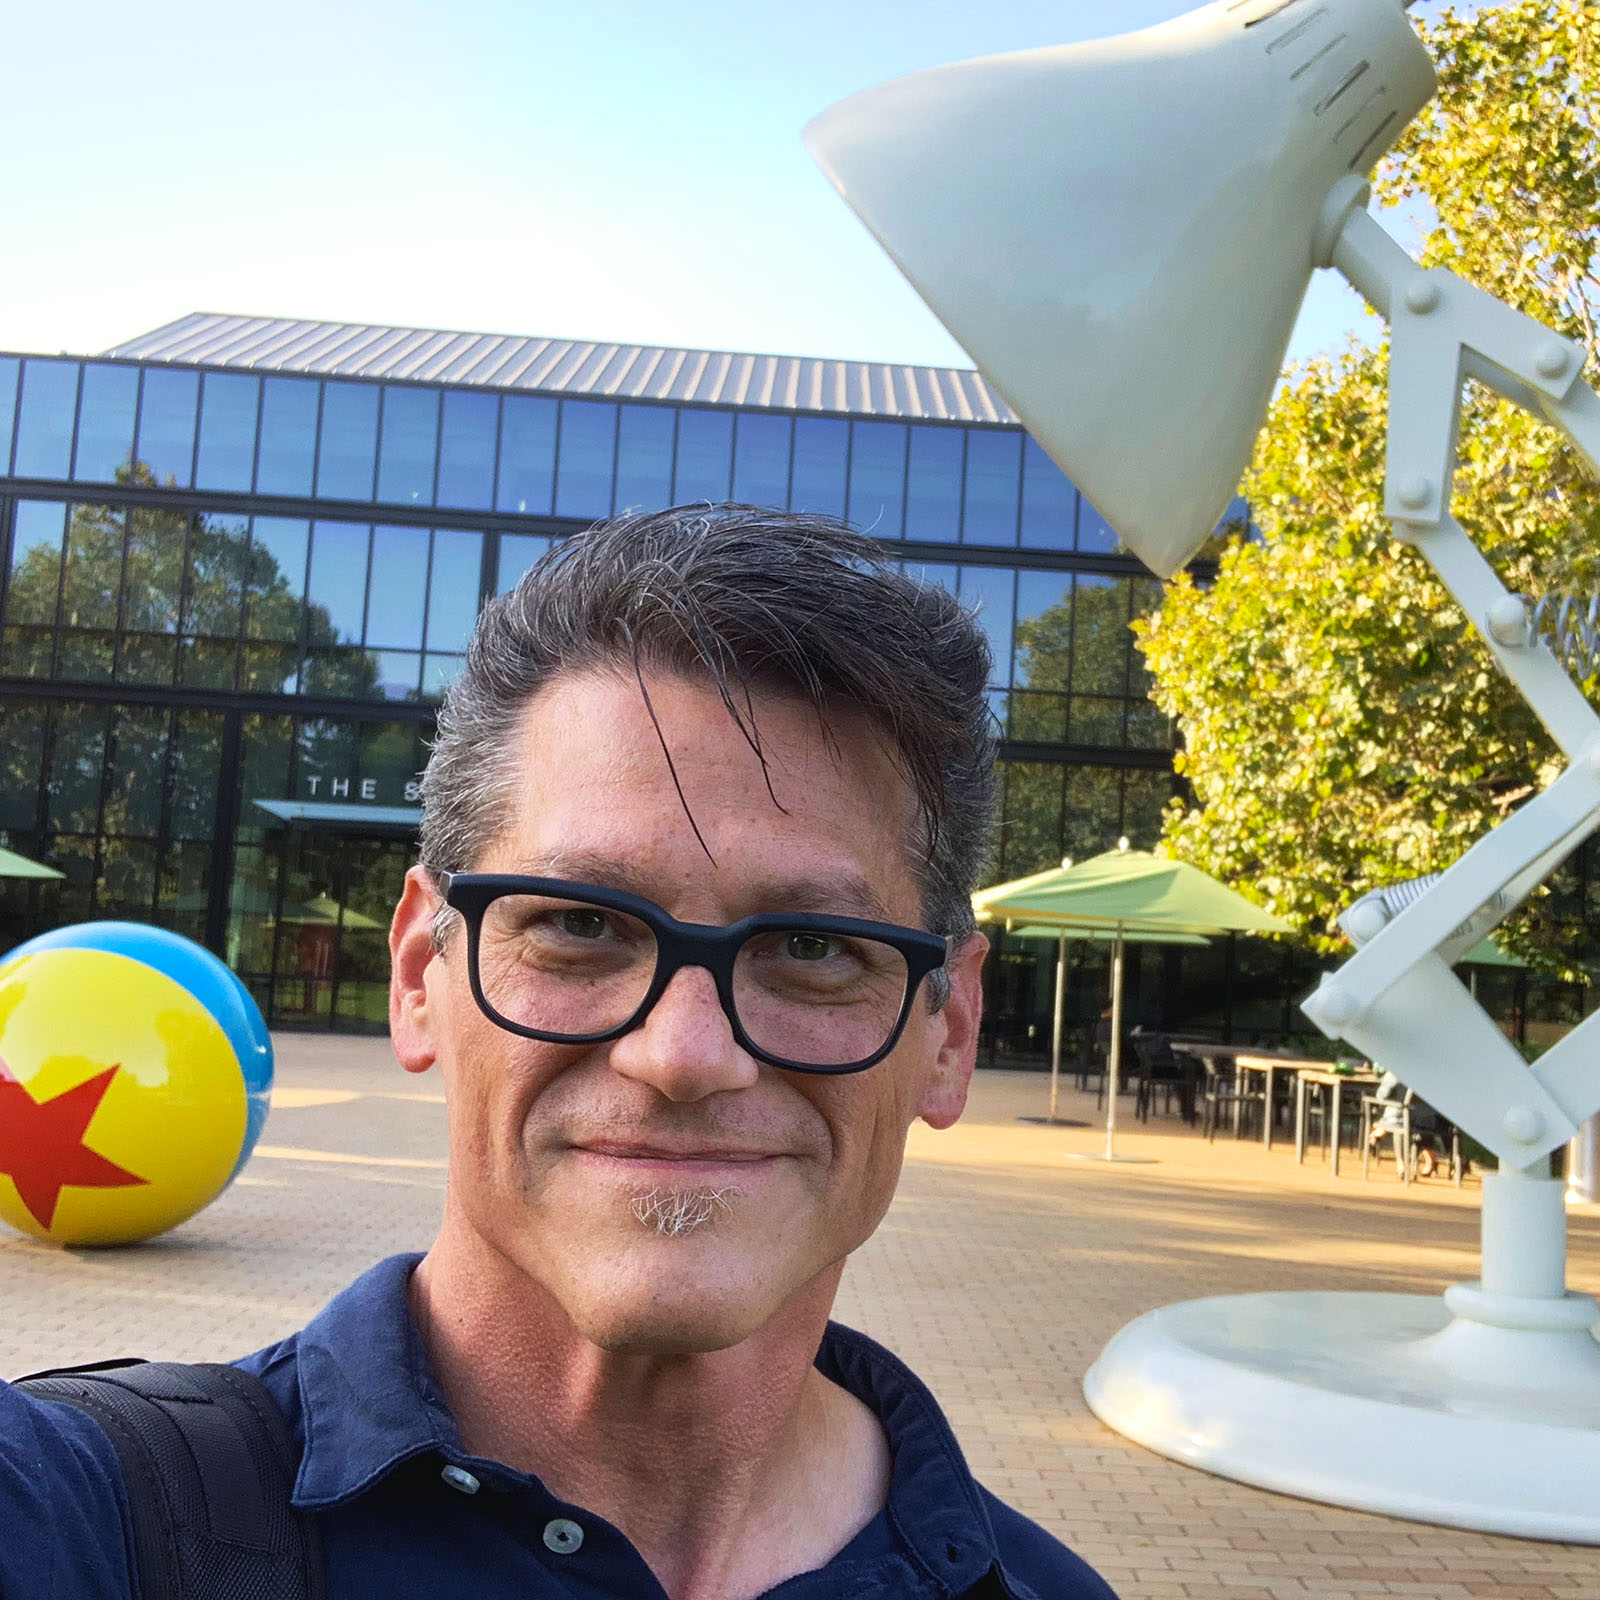 John At Pixar Campus